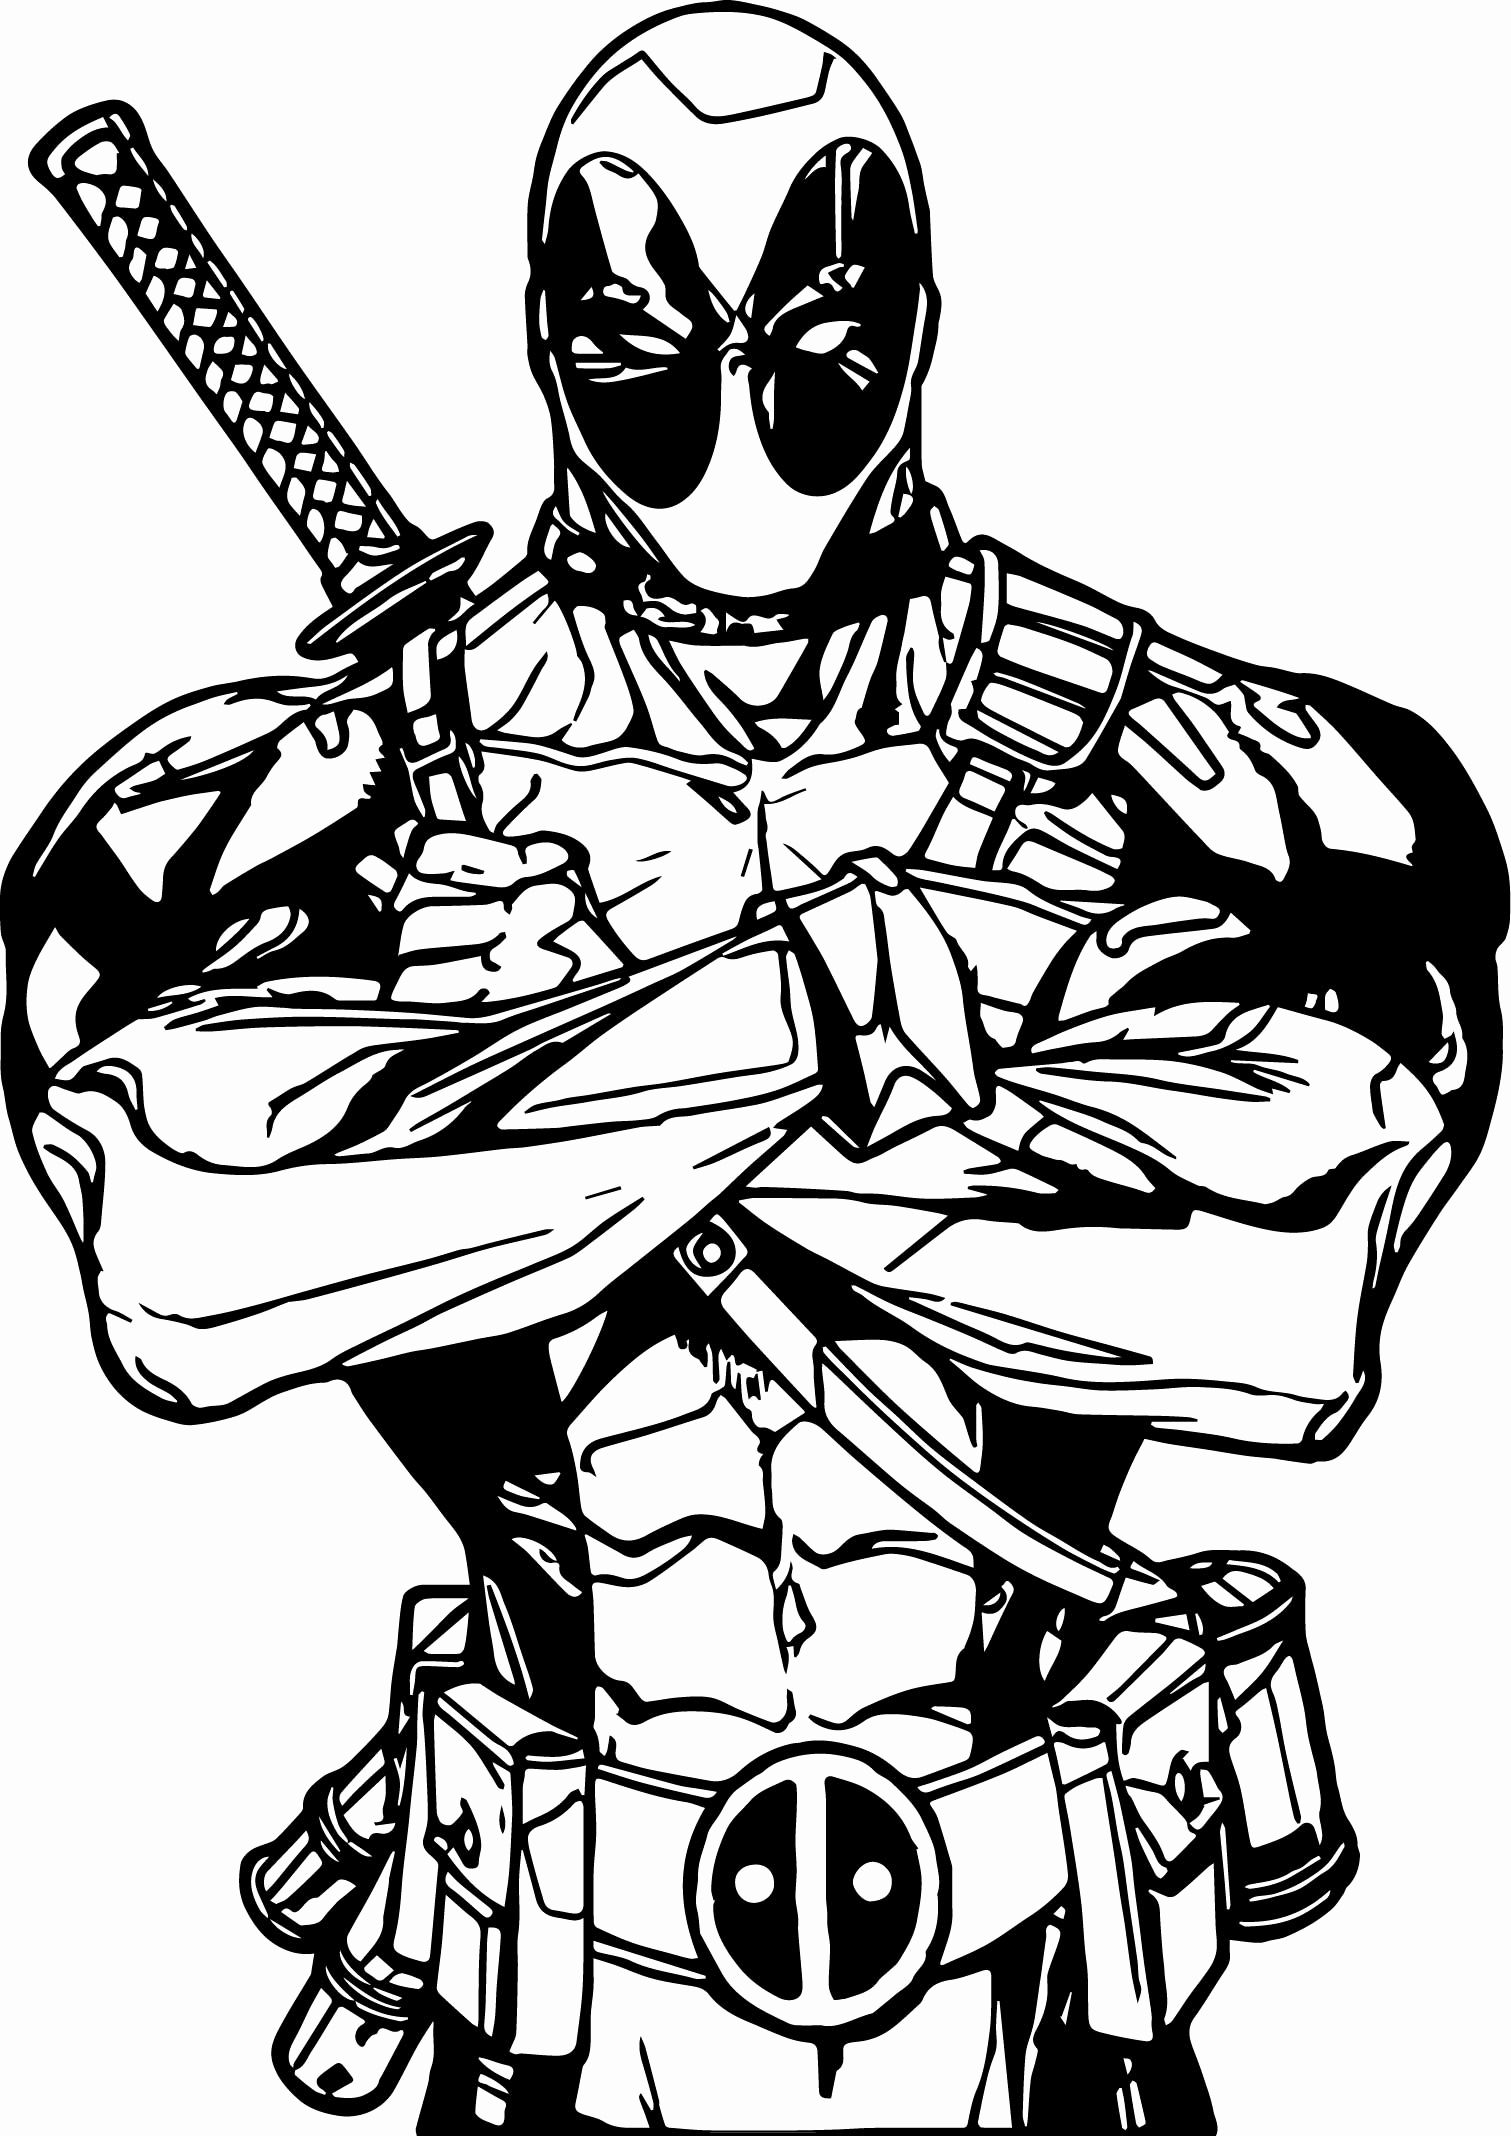 Printable Superhero Coloring Pages For Kids In 2020 Avengers Coloring Pages Avengers Coloring Superhero Coloring Pages